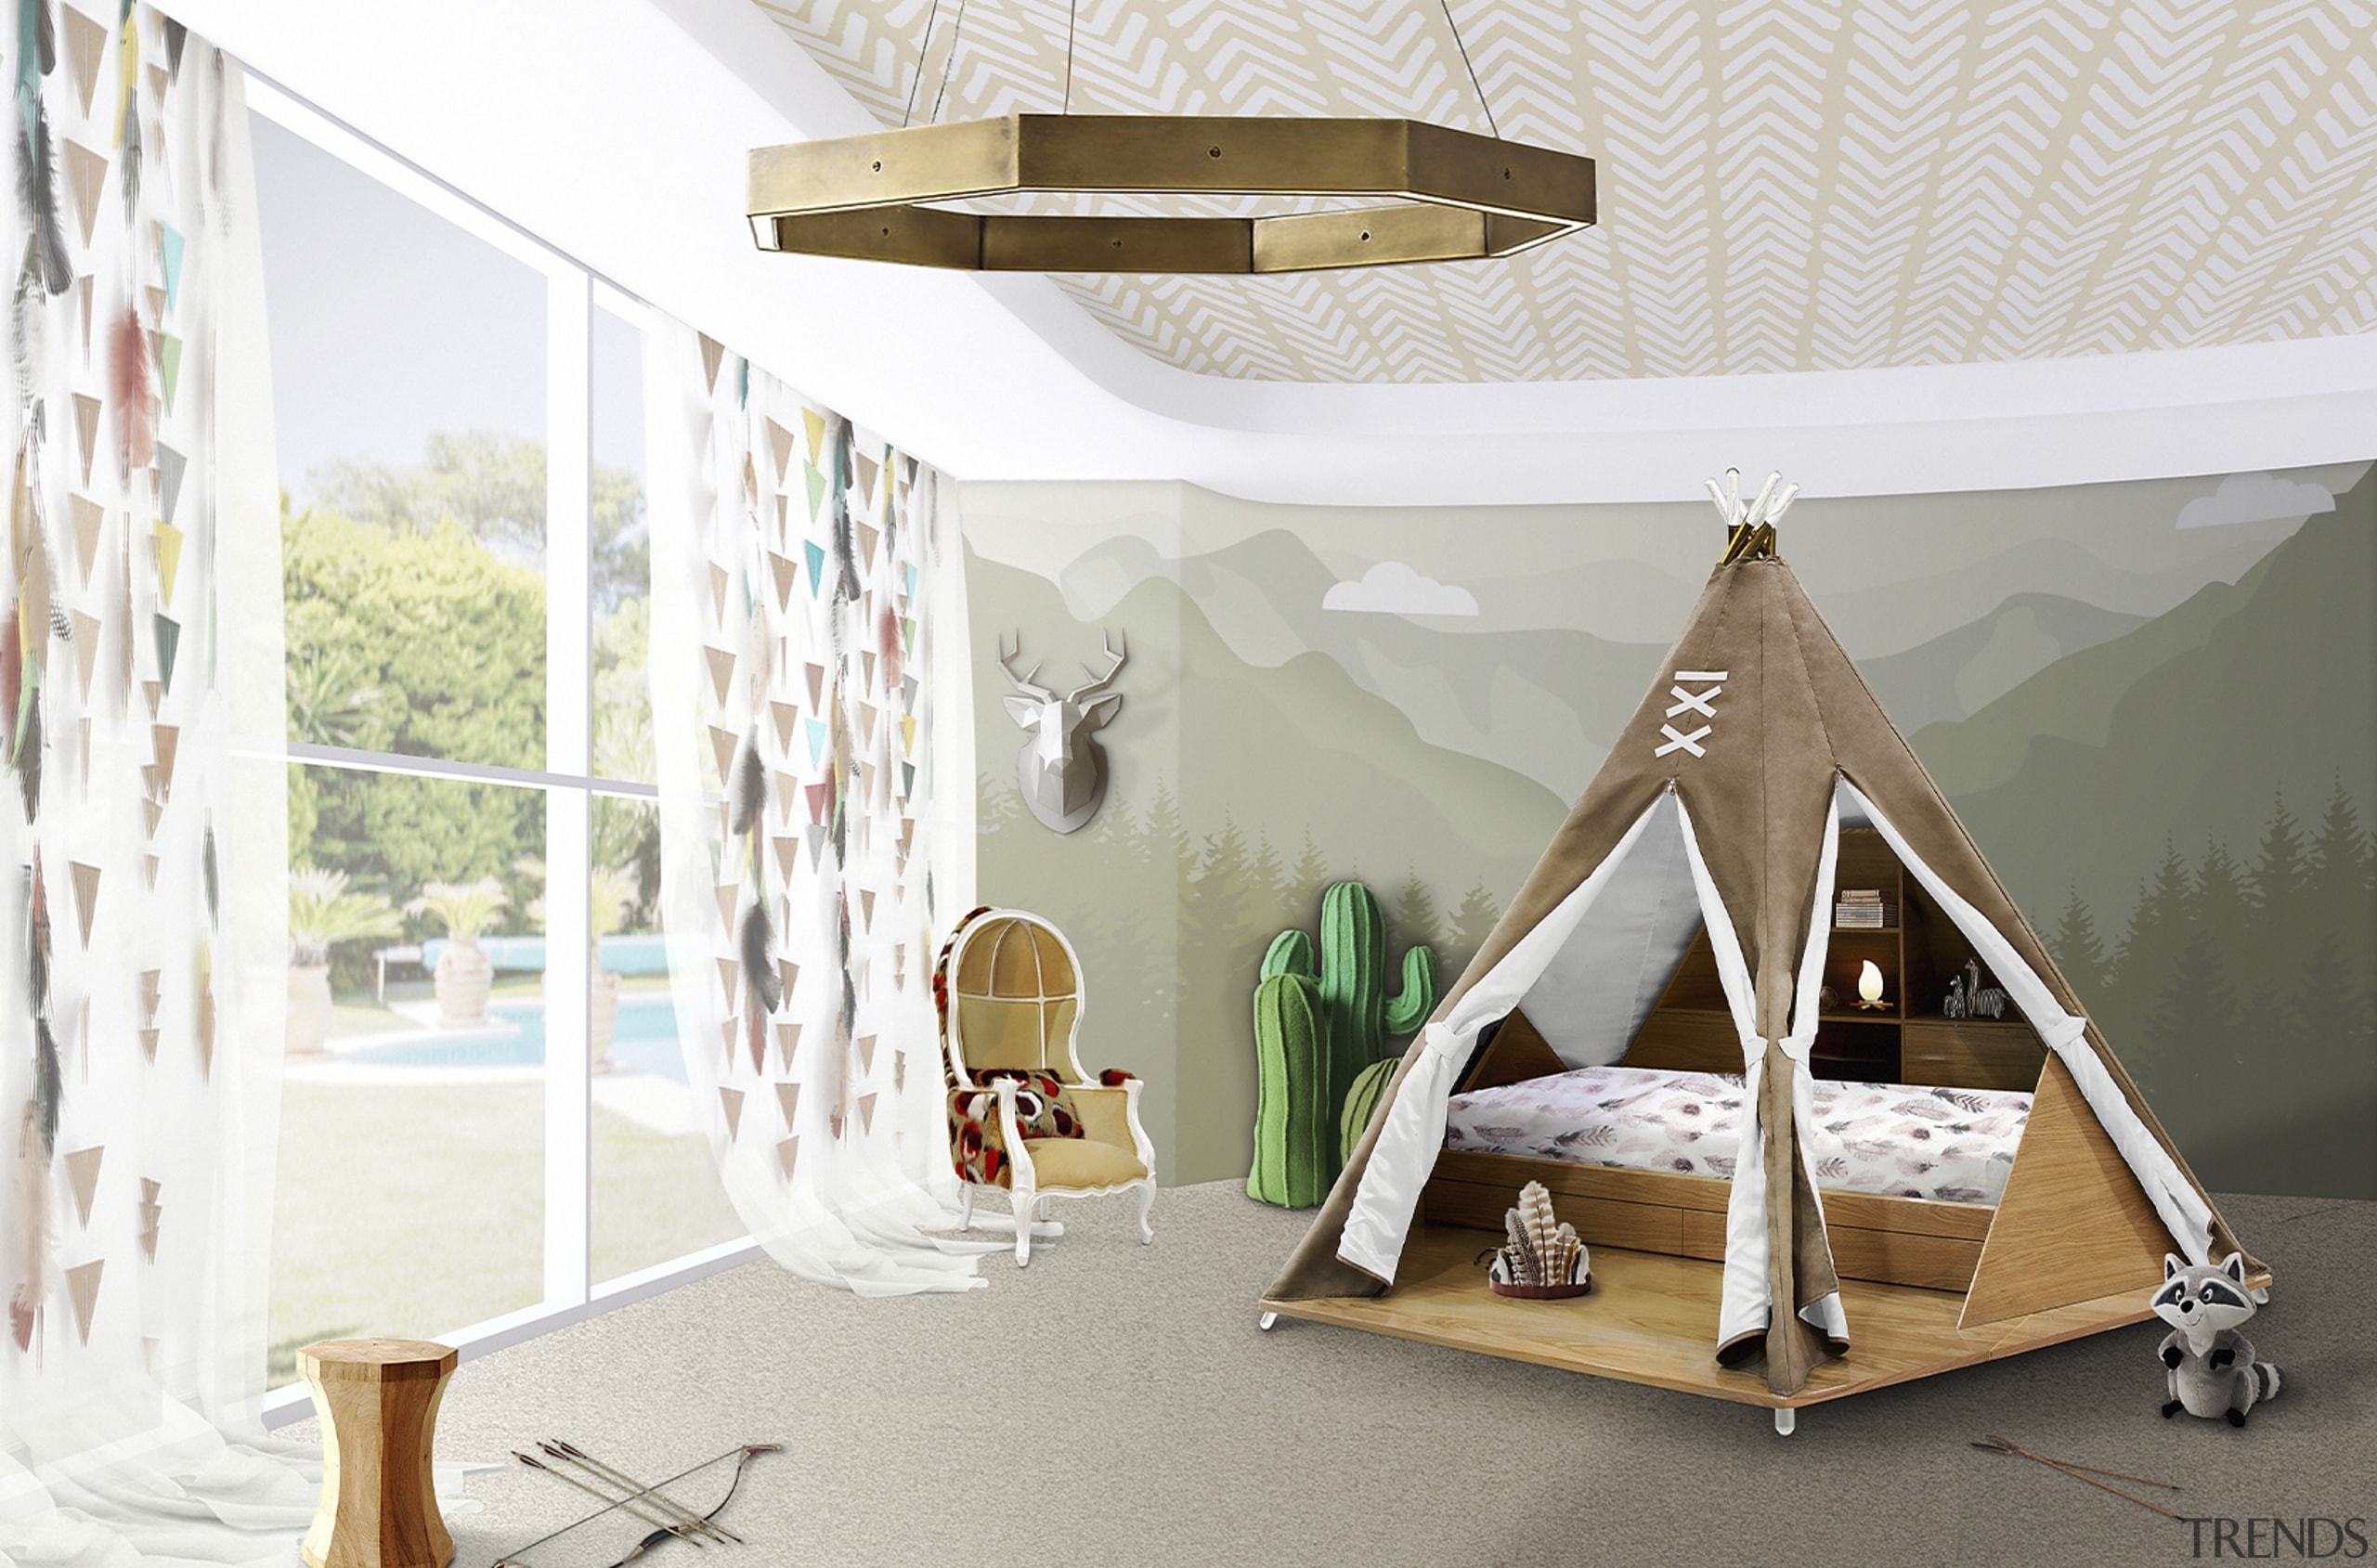 The teepee tent/bed is available from Circa Magical